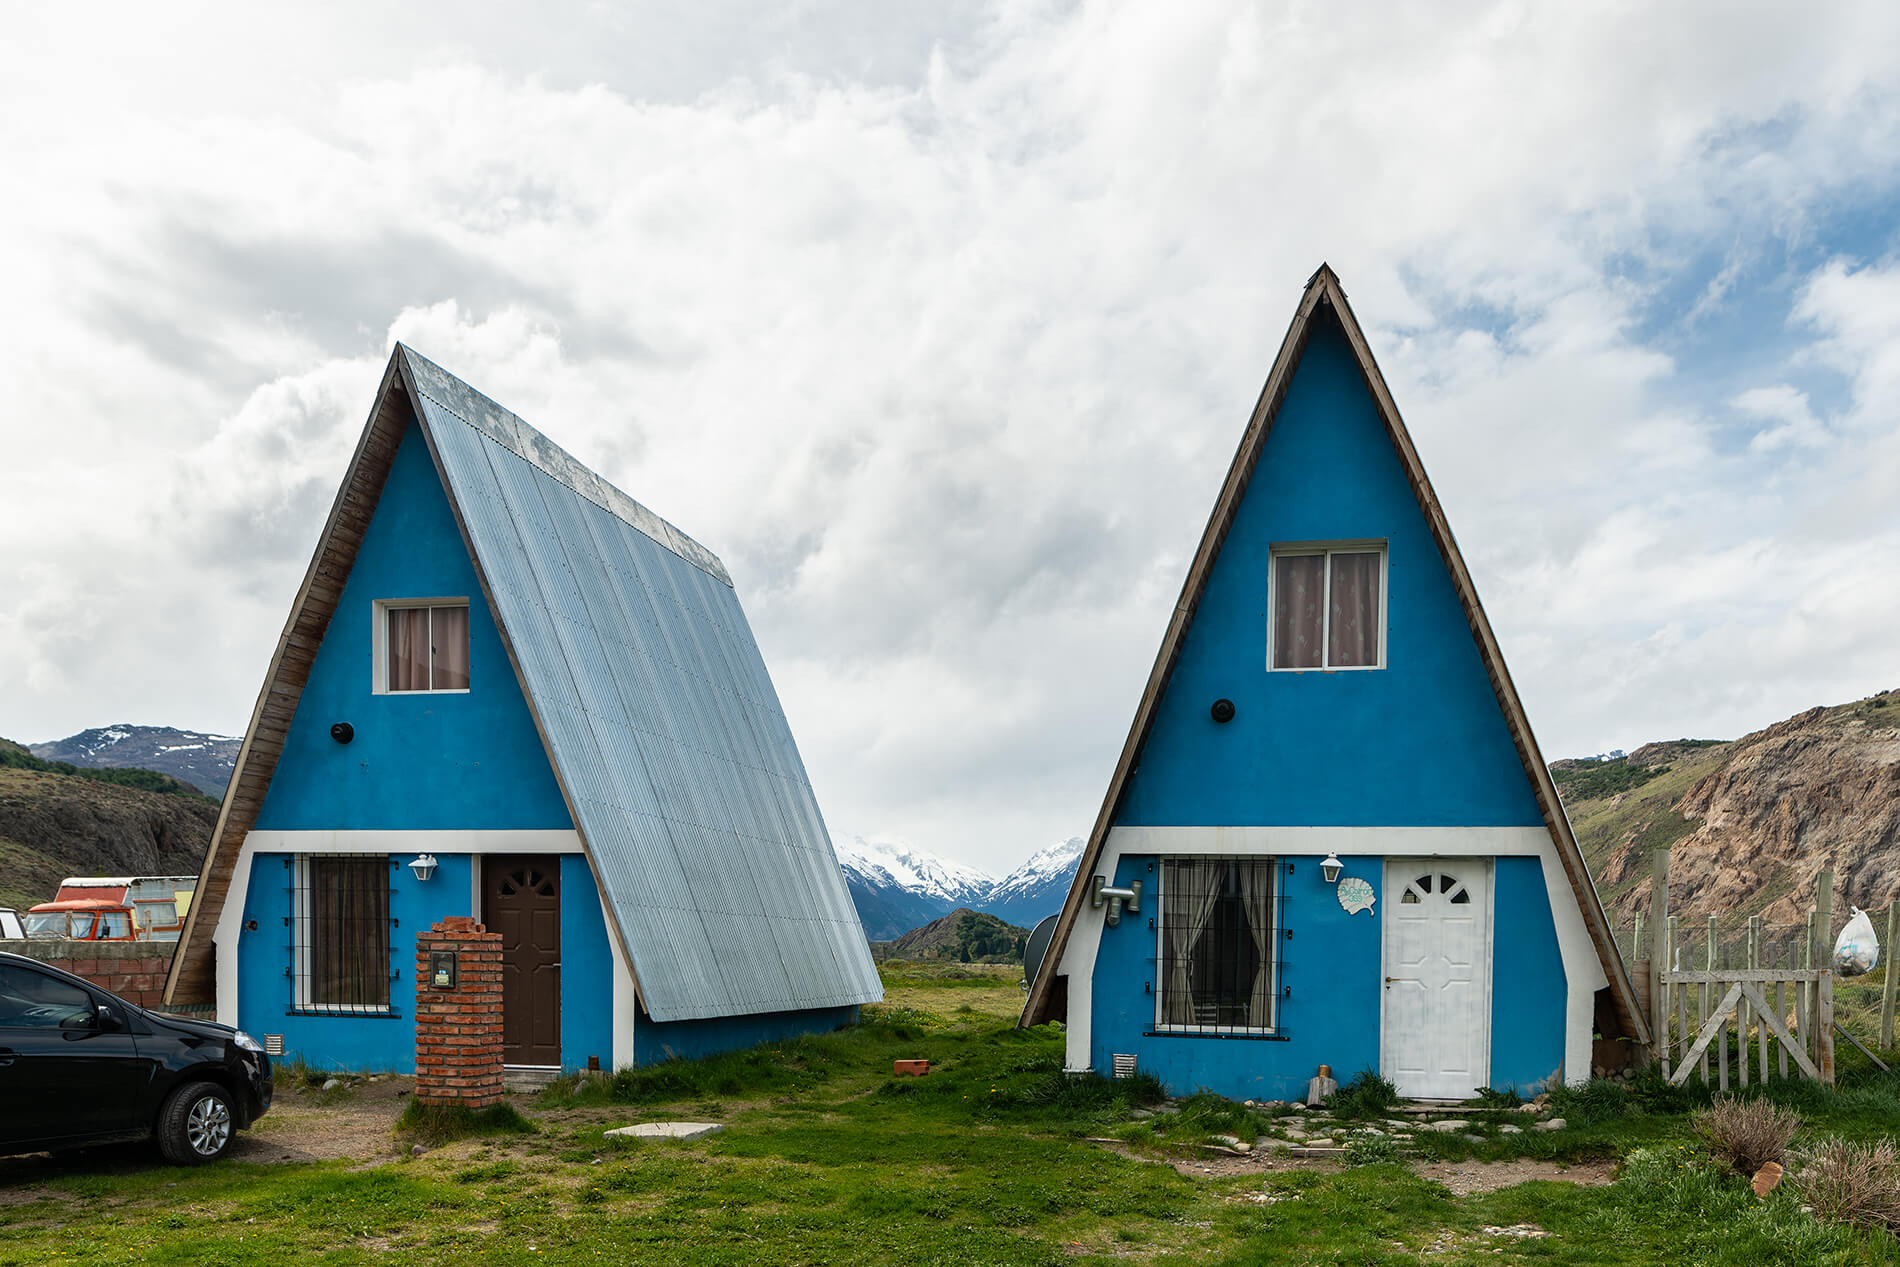 Typical Patagonian A-frame homes. These homes are designed to withstand the punishing wind and inclement weather so characteristic of Patagonia.